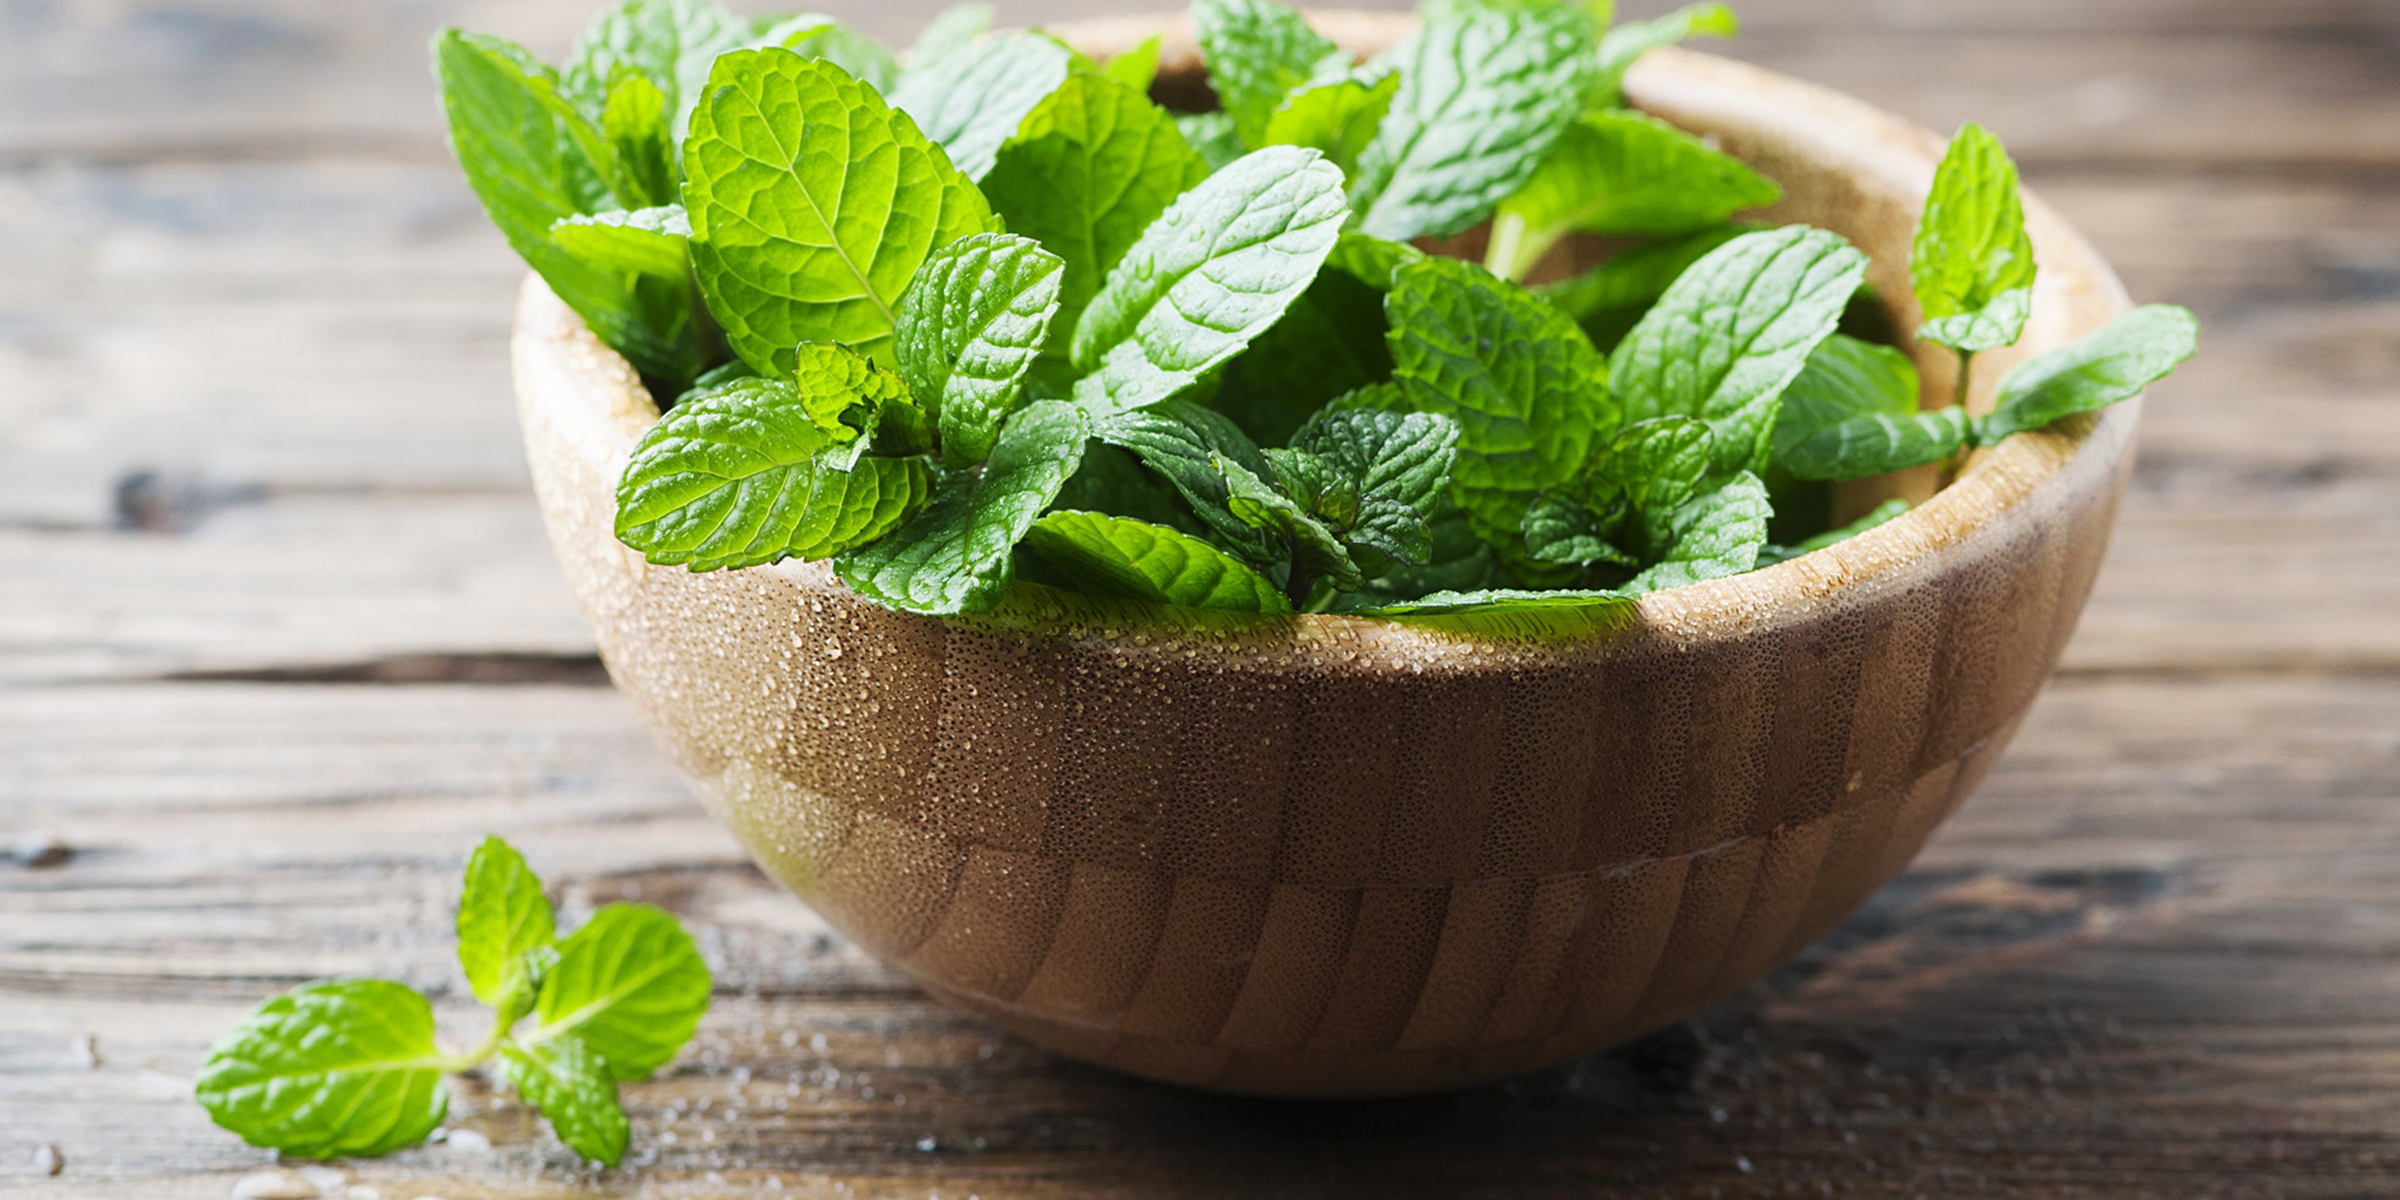 Mint mint used as powerful herbal remedies with mint tea